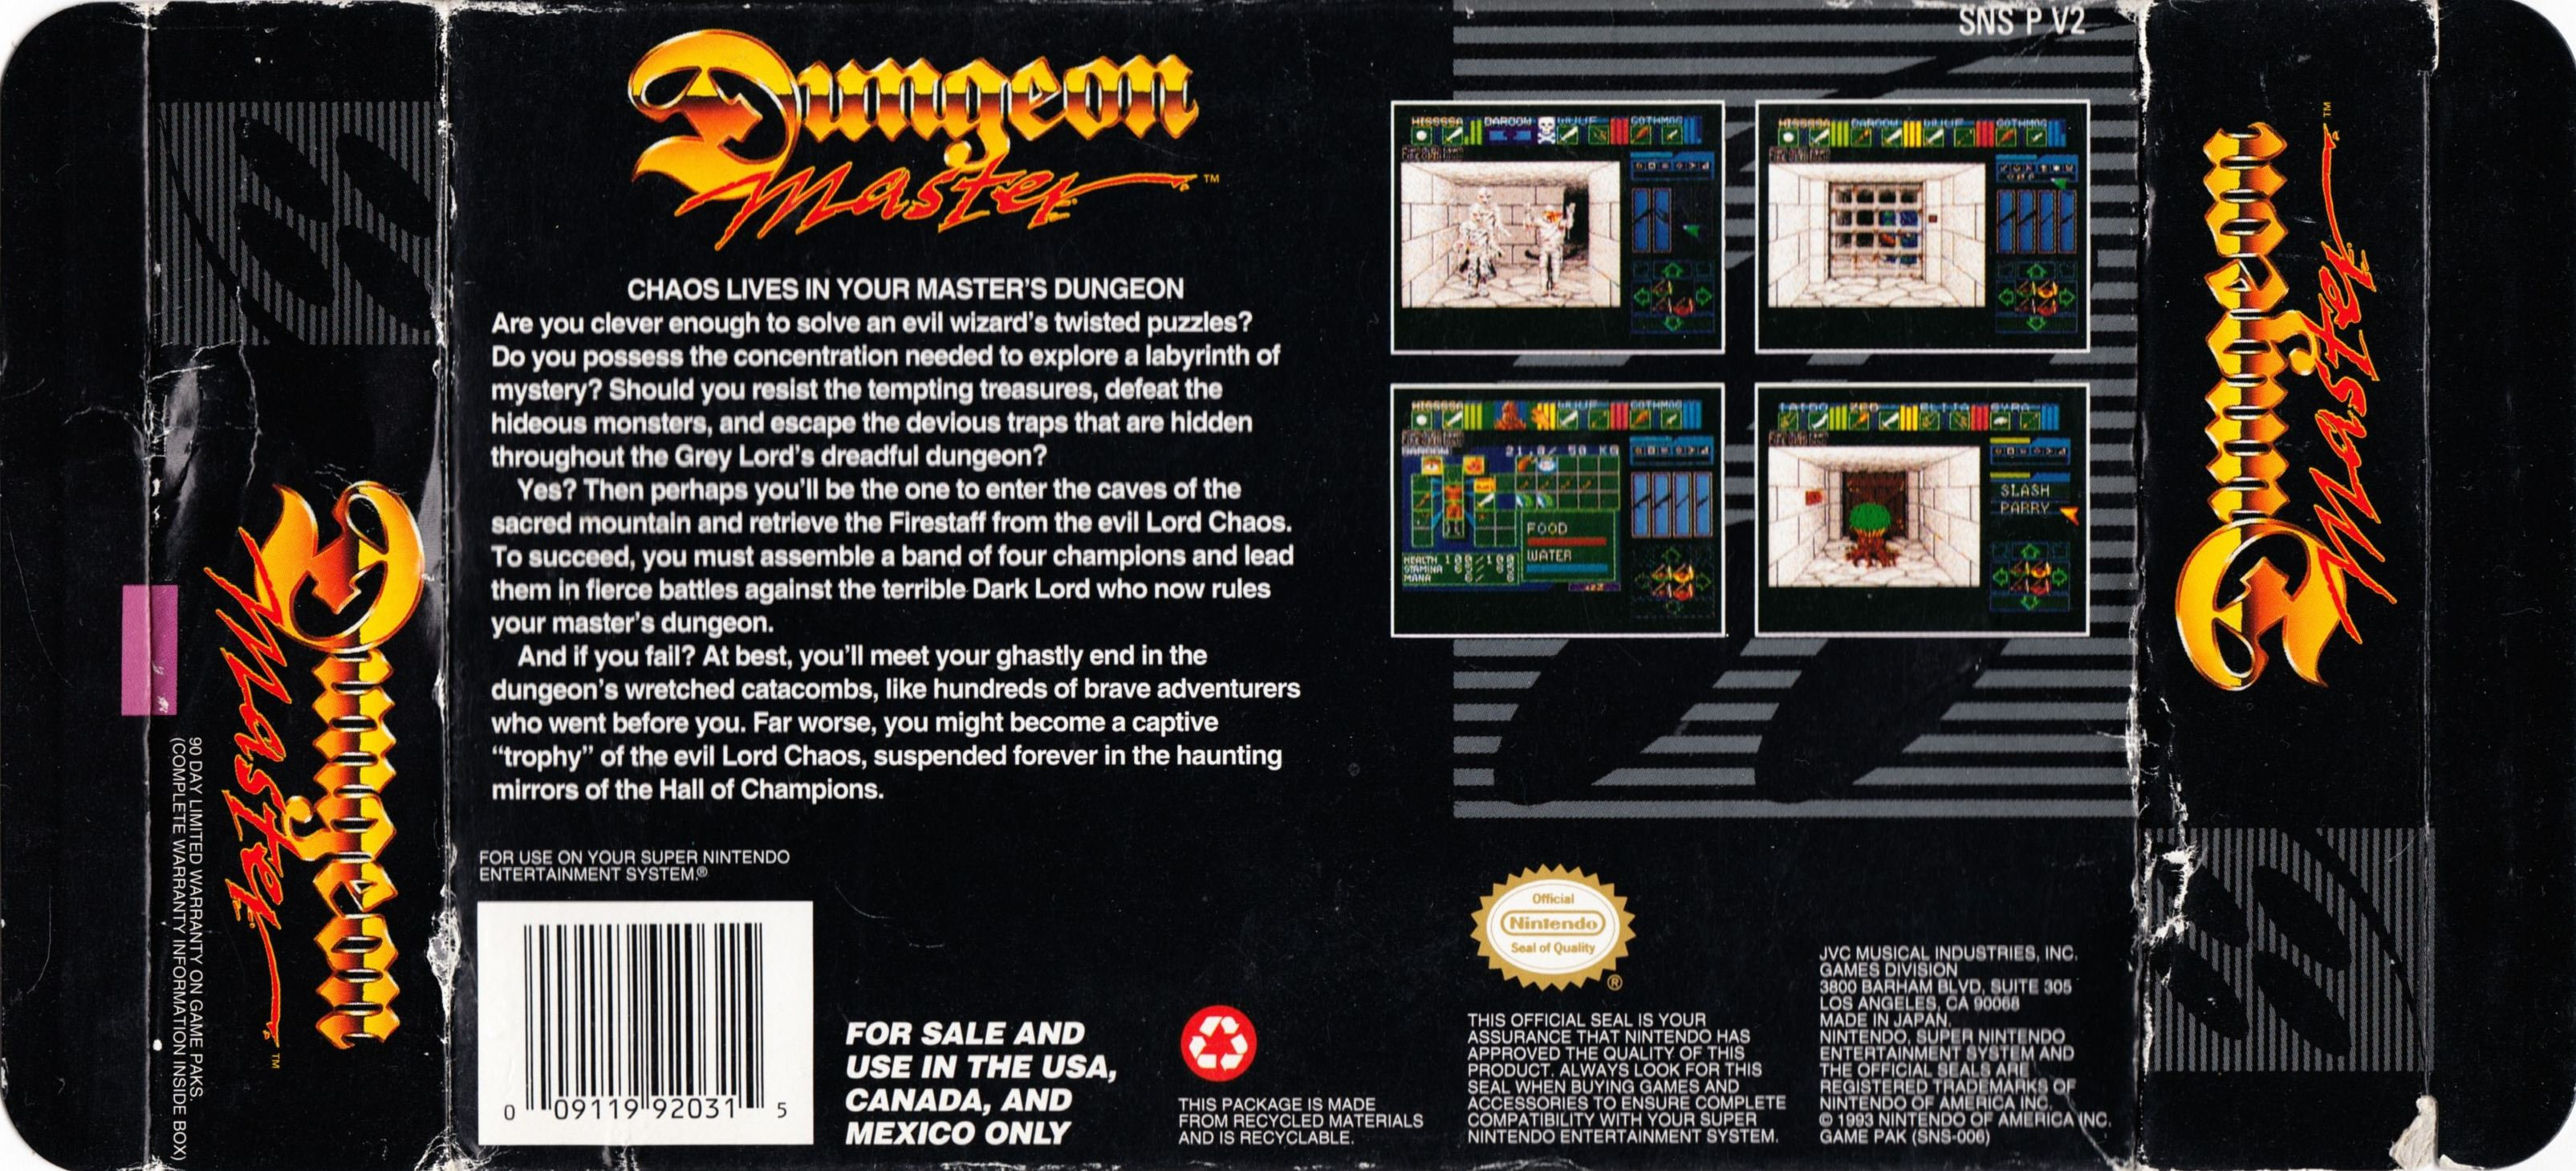 Game - Dungeon Master - US - Super NES - Box - Back Left Right - Scan